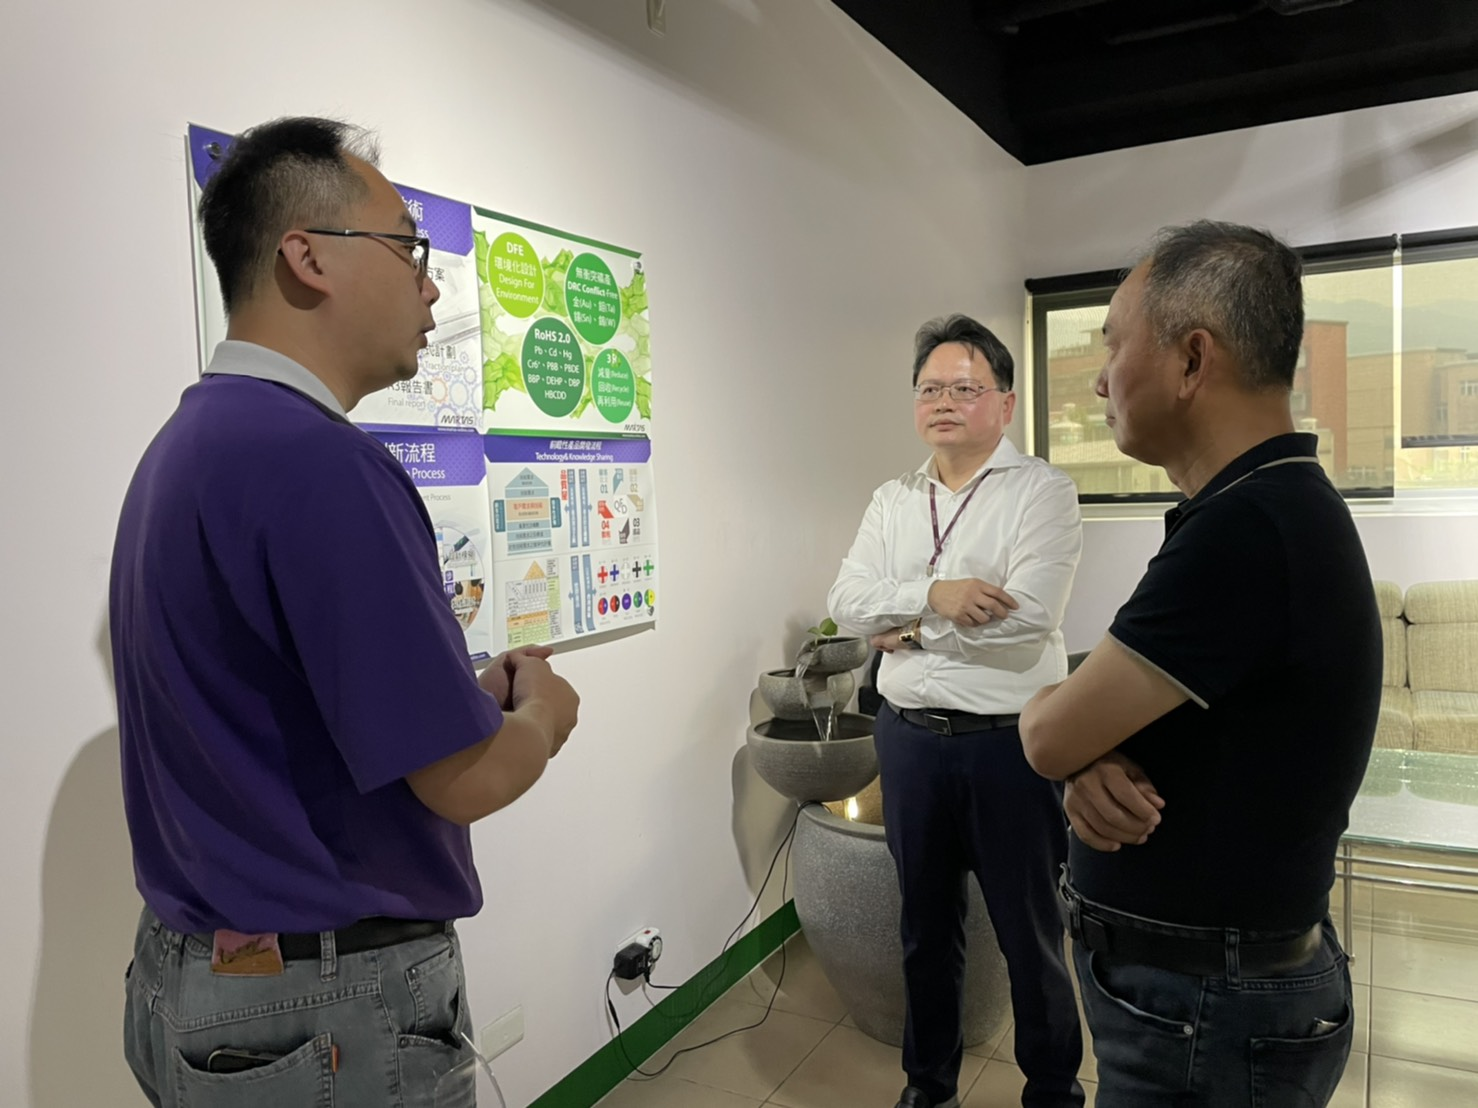 Welcome Jason Juang, Greater China MD of HP information technology Ltd. to visit Martas